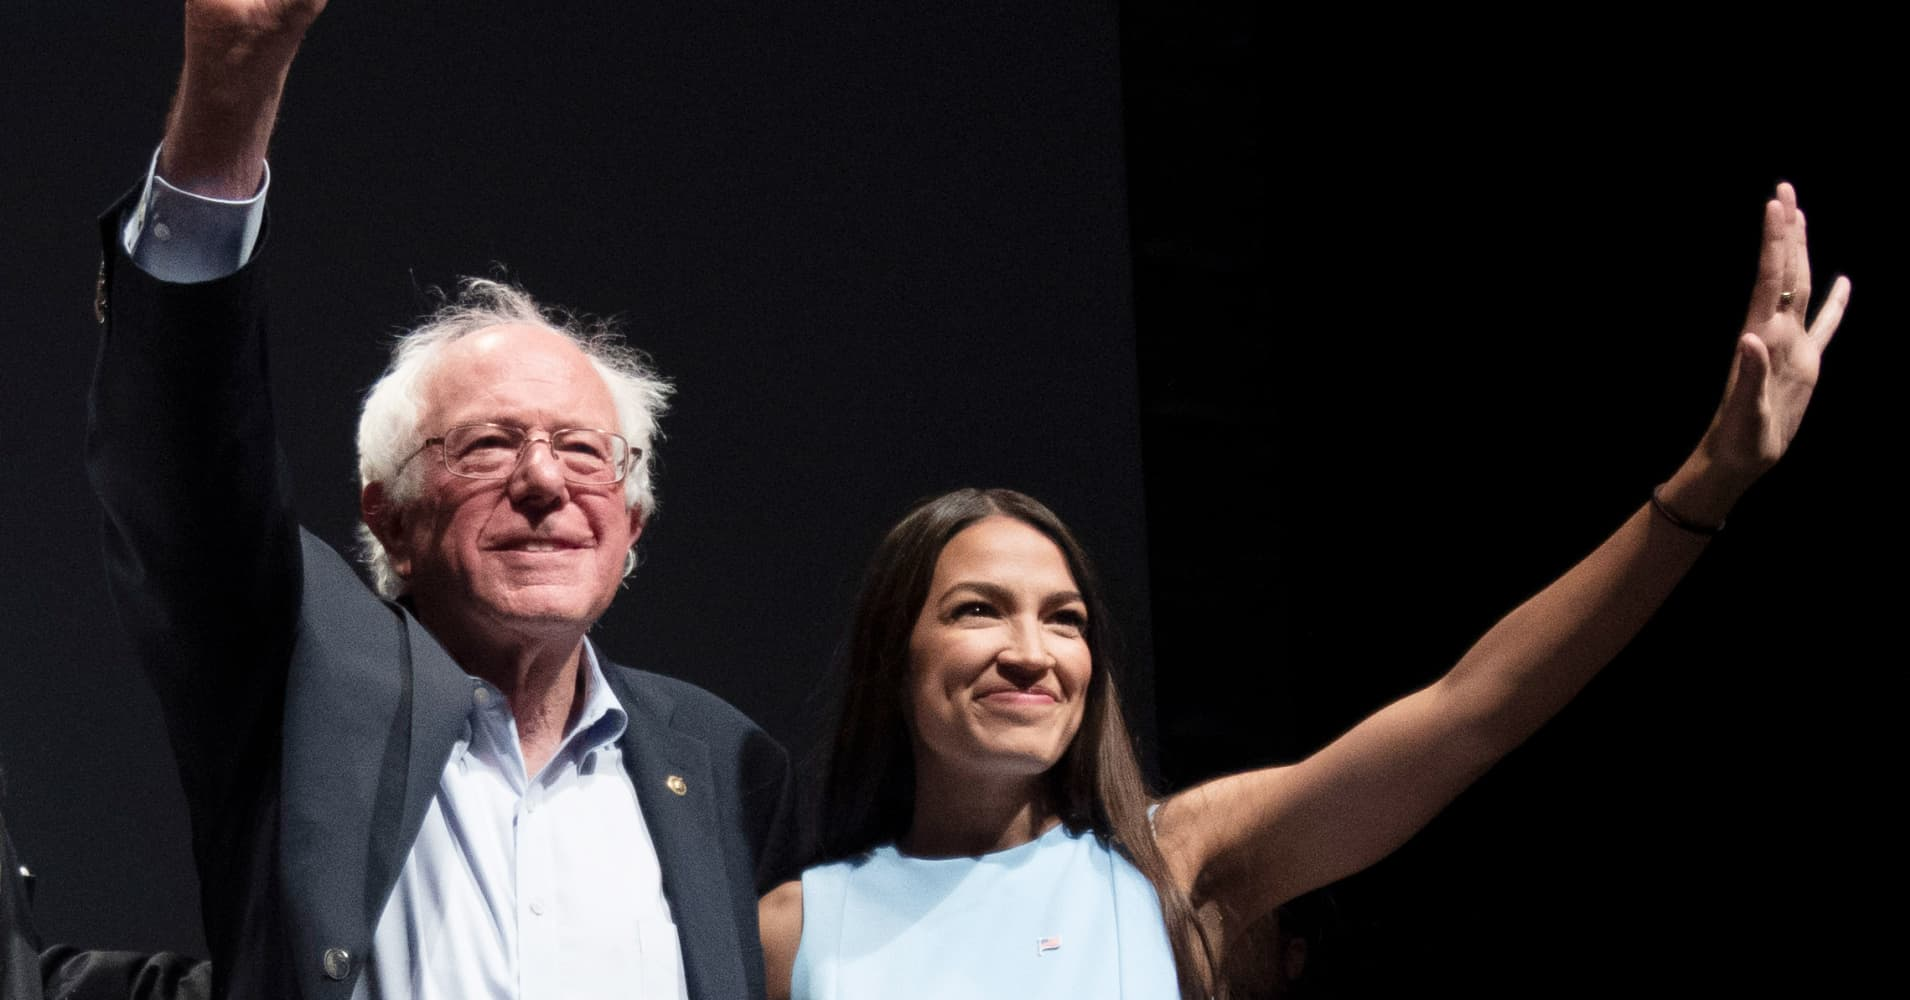 Senator Bernie Sanders and Alexandria Ocasio-Cortez, wave to the crowd at the end of a campaign rally in Wichita, Kansas on July 20, 2018.